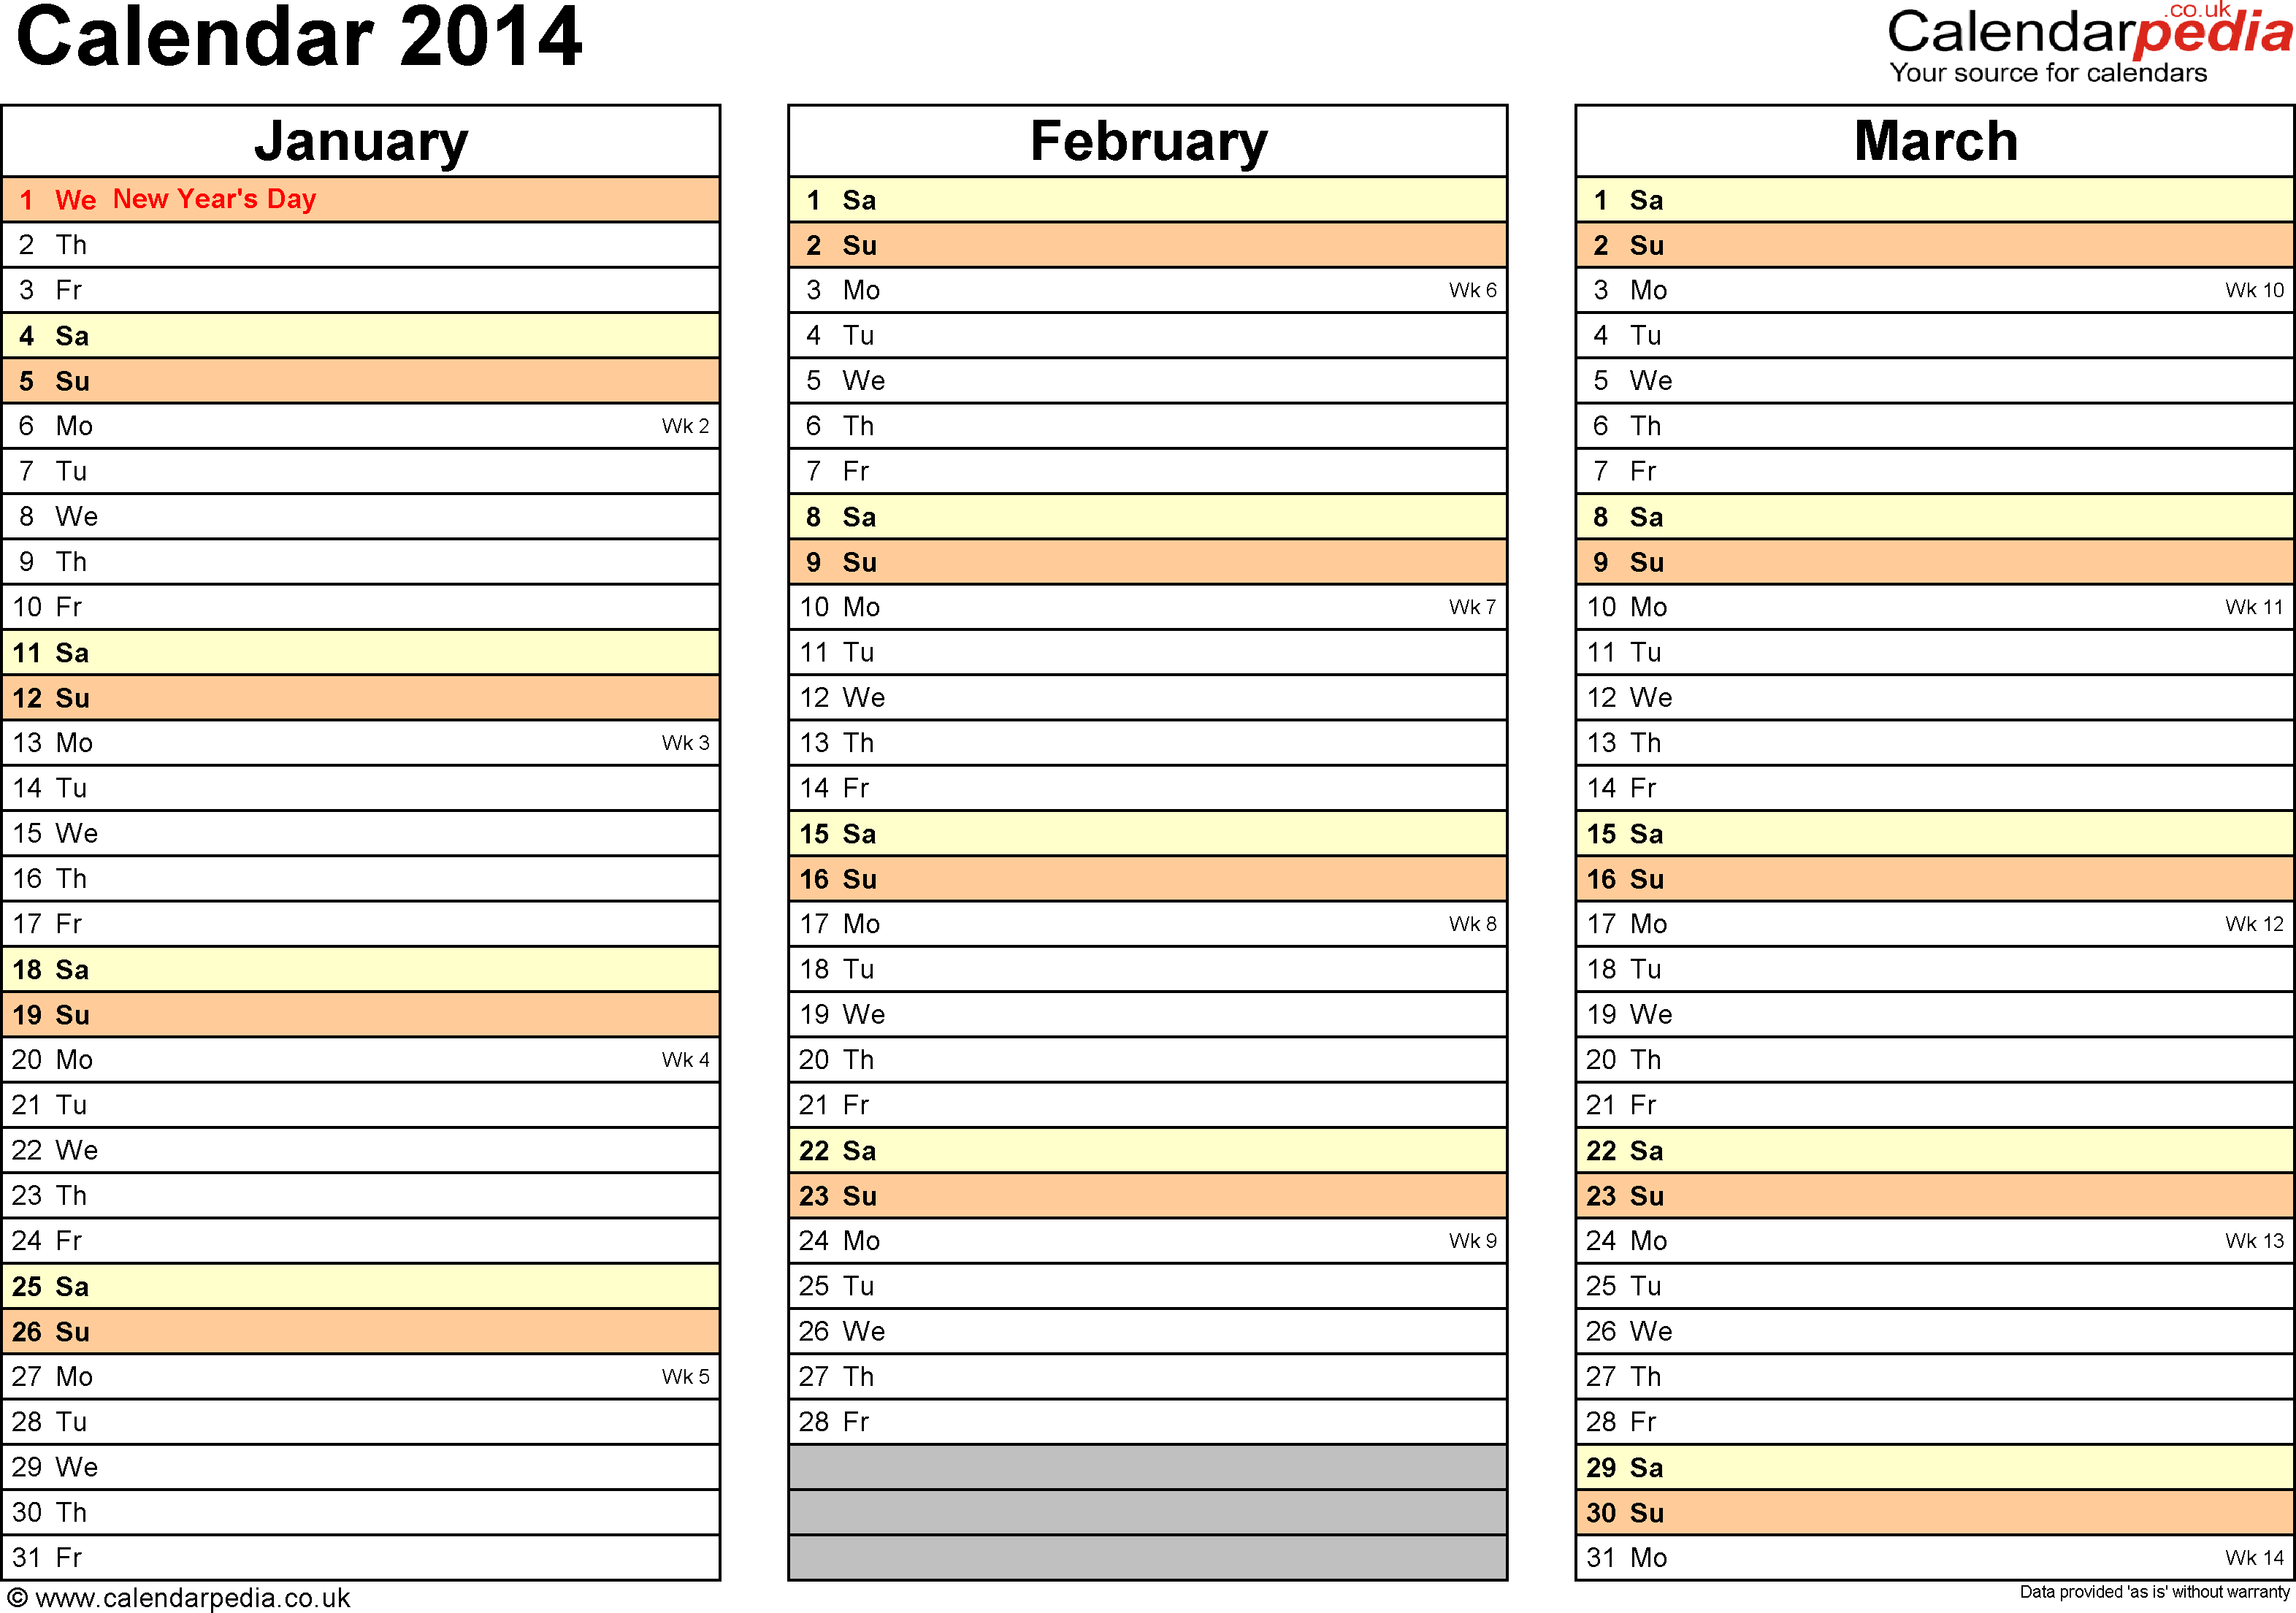 Template 6: Yearly calendar 2014 as PDF template, landscape orientation, 4 pages, months horizontally, days vertically, with UK bank holidays and week numbers